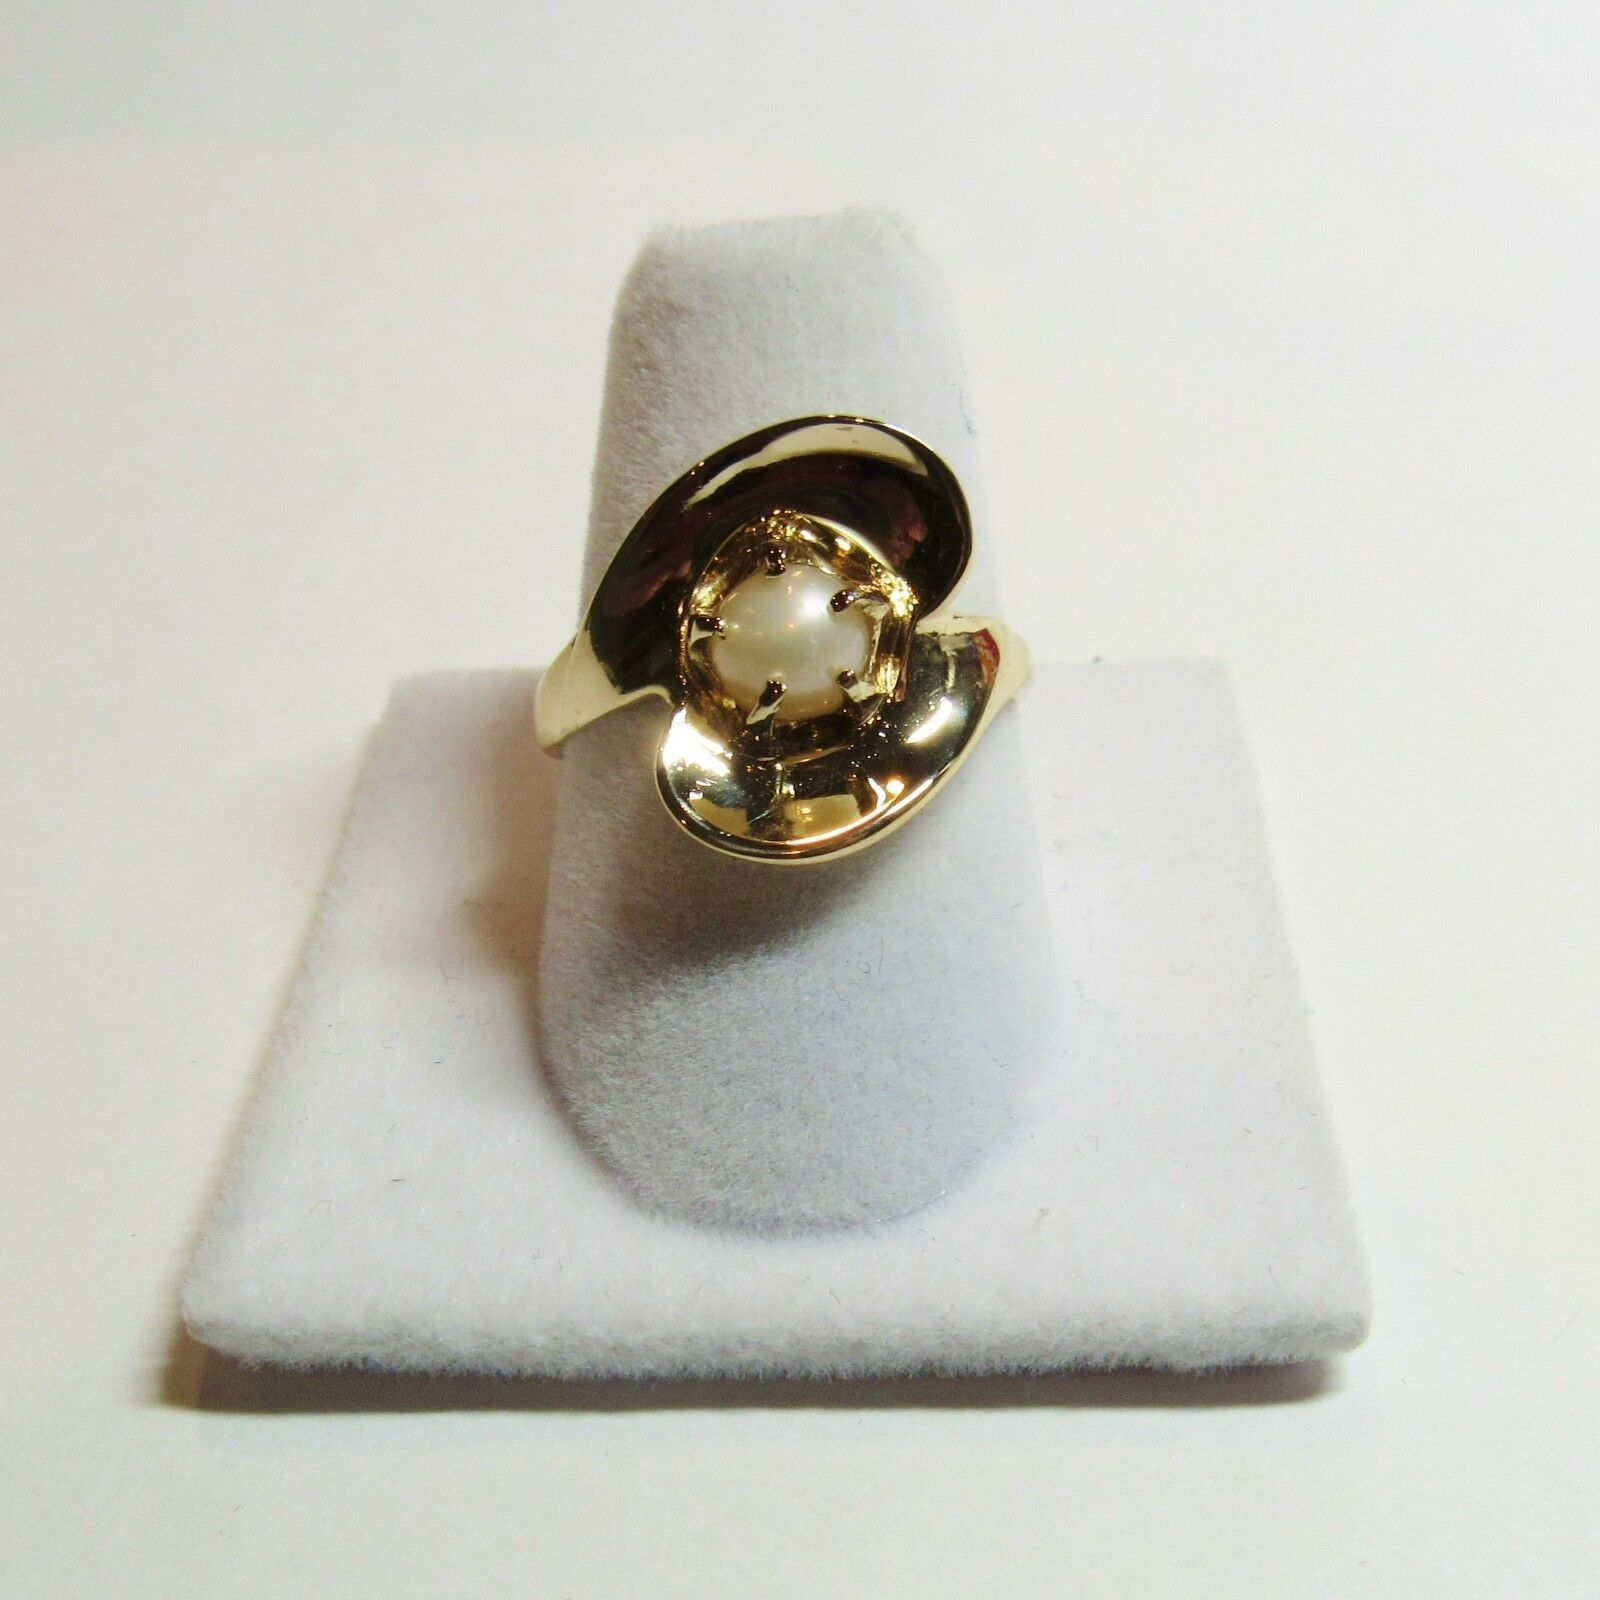 Primary image for 1940 Vintage 14K Yellow Gold Pearl Curvilinear Flower Size 7.5 Ring Baden & Foss